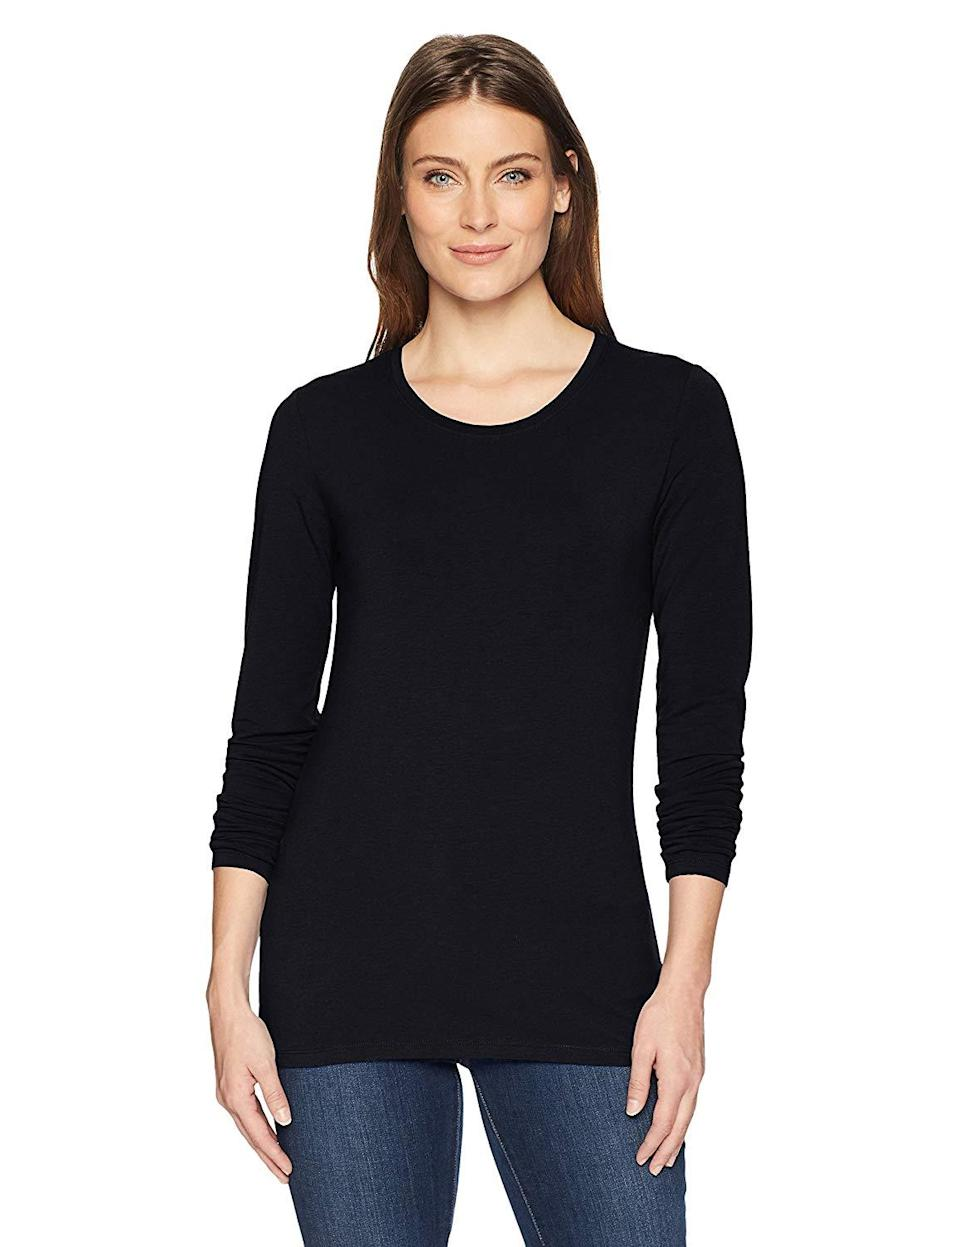 """<h3><a href=""""https://amzn.to/2SEGz2r"""" rel=""""nofollow noopener"""" target=""""_blank"""" data-ylk=""""slk:Cotton Long-Sleeve Tee"""" class=""""link rapid-noclick-resp"""">Cotton Long-Sleeve Tee</a> </h3><br><strong>Rose</strong><br><br><strong>How She Discovered It:</strong> """"I was browsing through Amazon and saw it.""""<br><br><strong>Why It's A Hidden Gem:</strong> """"It's SUCH a good quality shirt for every day. It's super soft and I wear it practically every day with leggings and it never stretches out or wears.""""<br><br><strong>Amazon Essentials</strong> Women's Long-Sleeve T-Shirt, $, available at <a href=""""https://www.amazon.com/Amazon-Essentials-Womens-Long-Sleeve-T-Shirt/dp/B079HLTJ88/ref=redir_mobile_desktop"""" rel=""""nofollow noopener"""" target=""""_blank"""" data-ylk=""""slk:Amazon"""" class=""""link rapid-noclick-resp"""">Amazon</a>"""